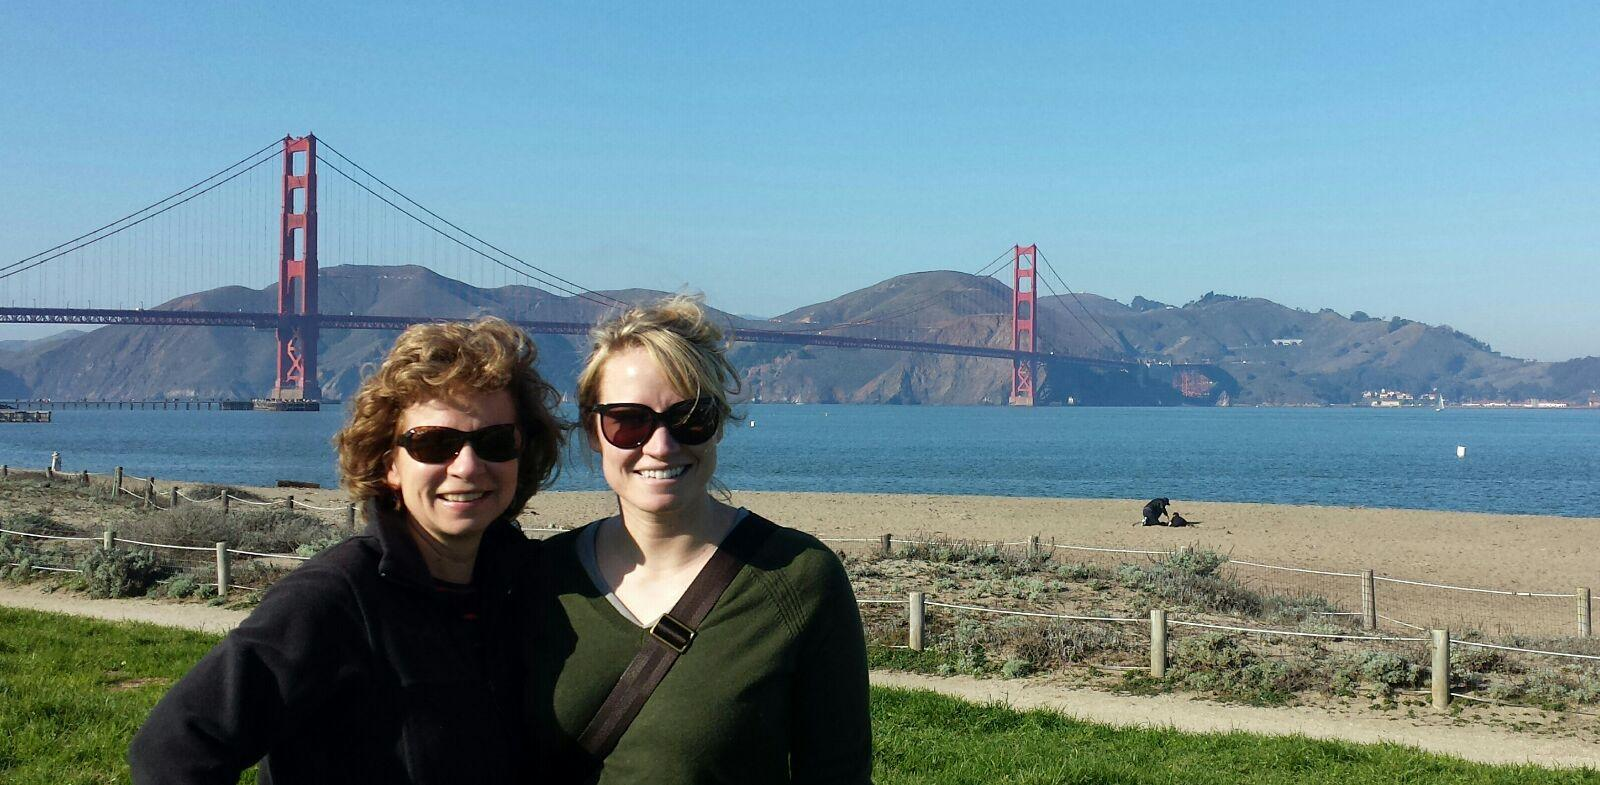 Mom & I at Crissy Field